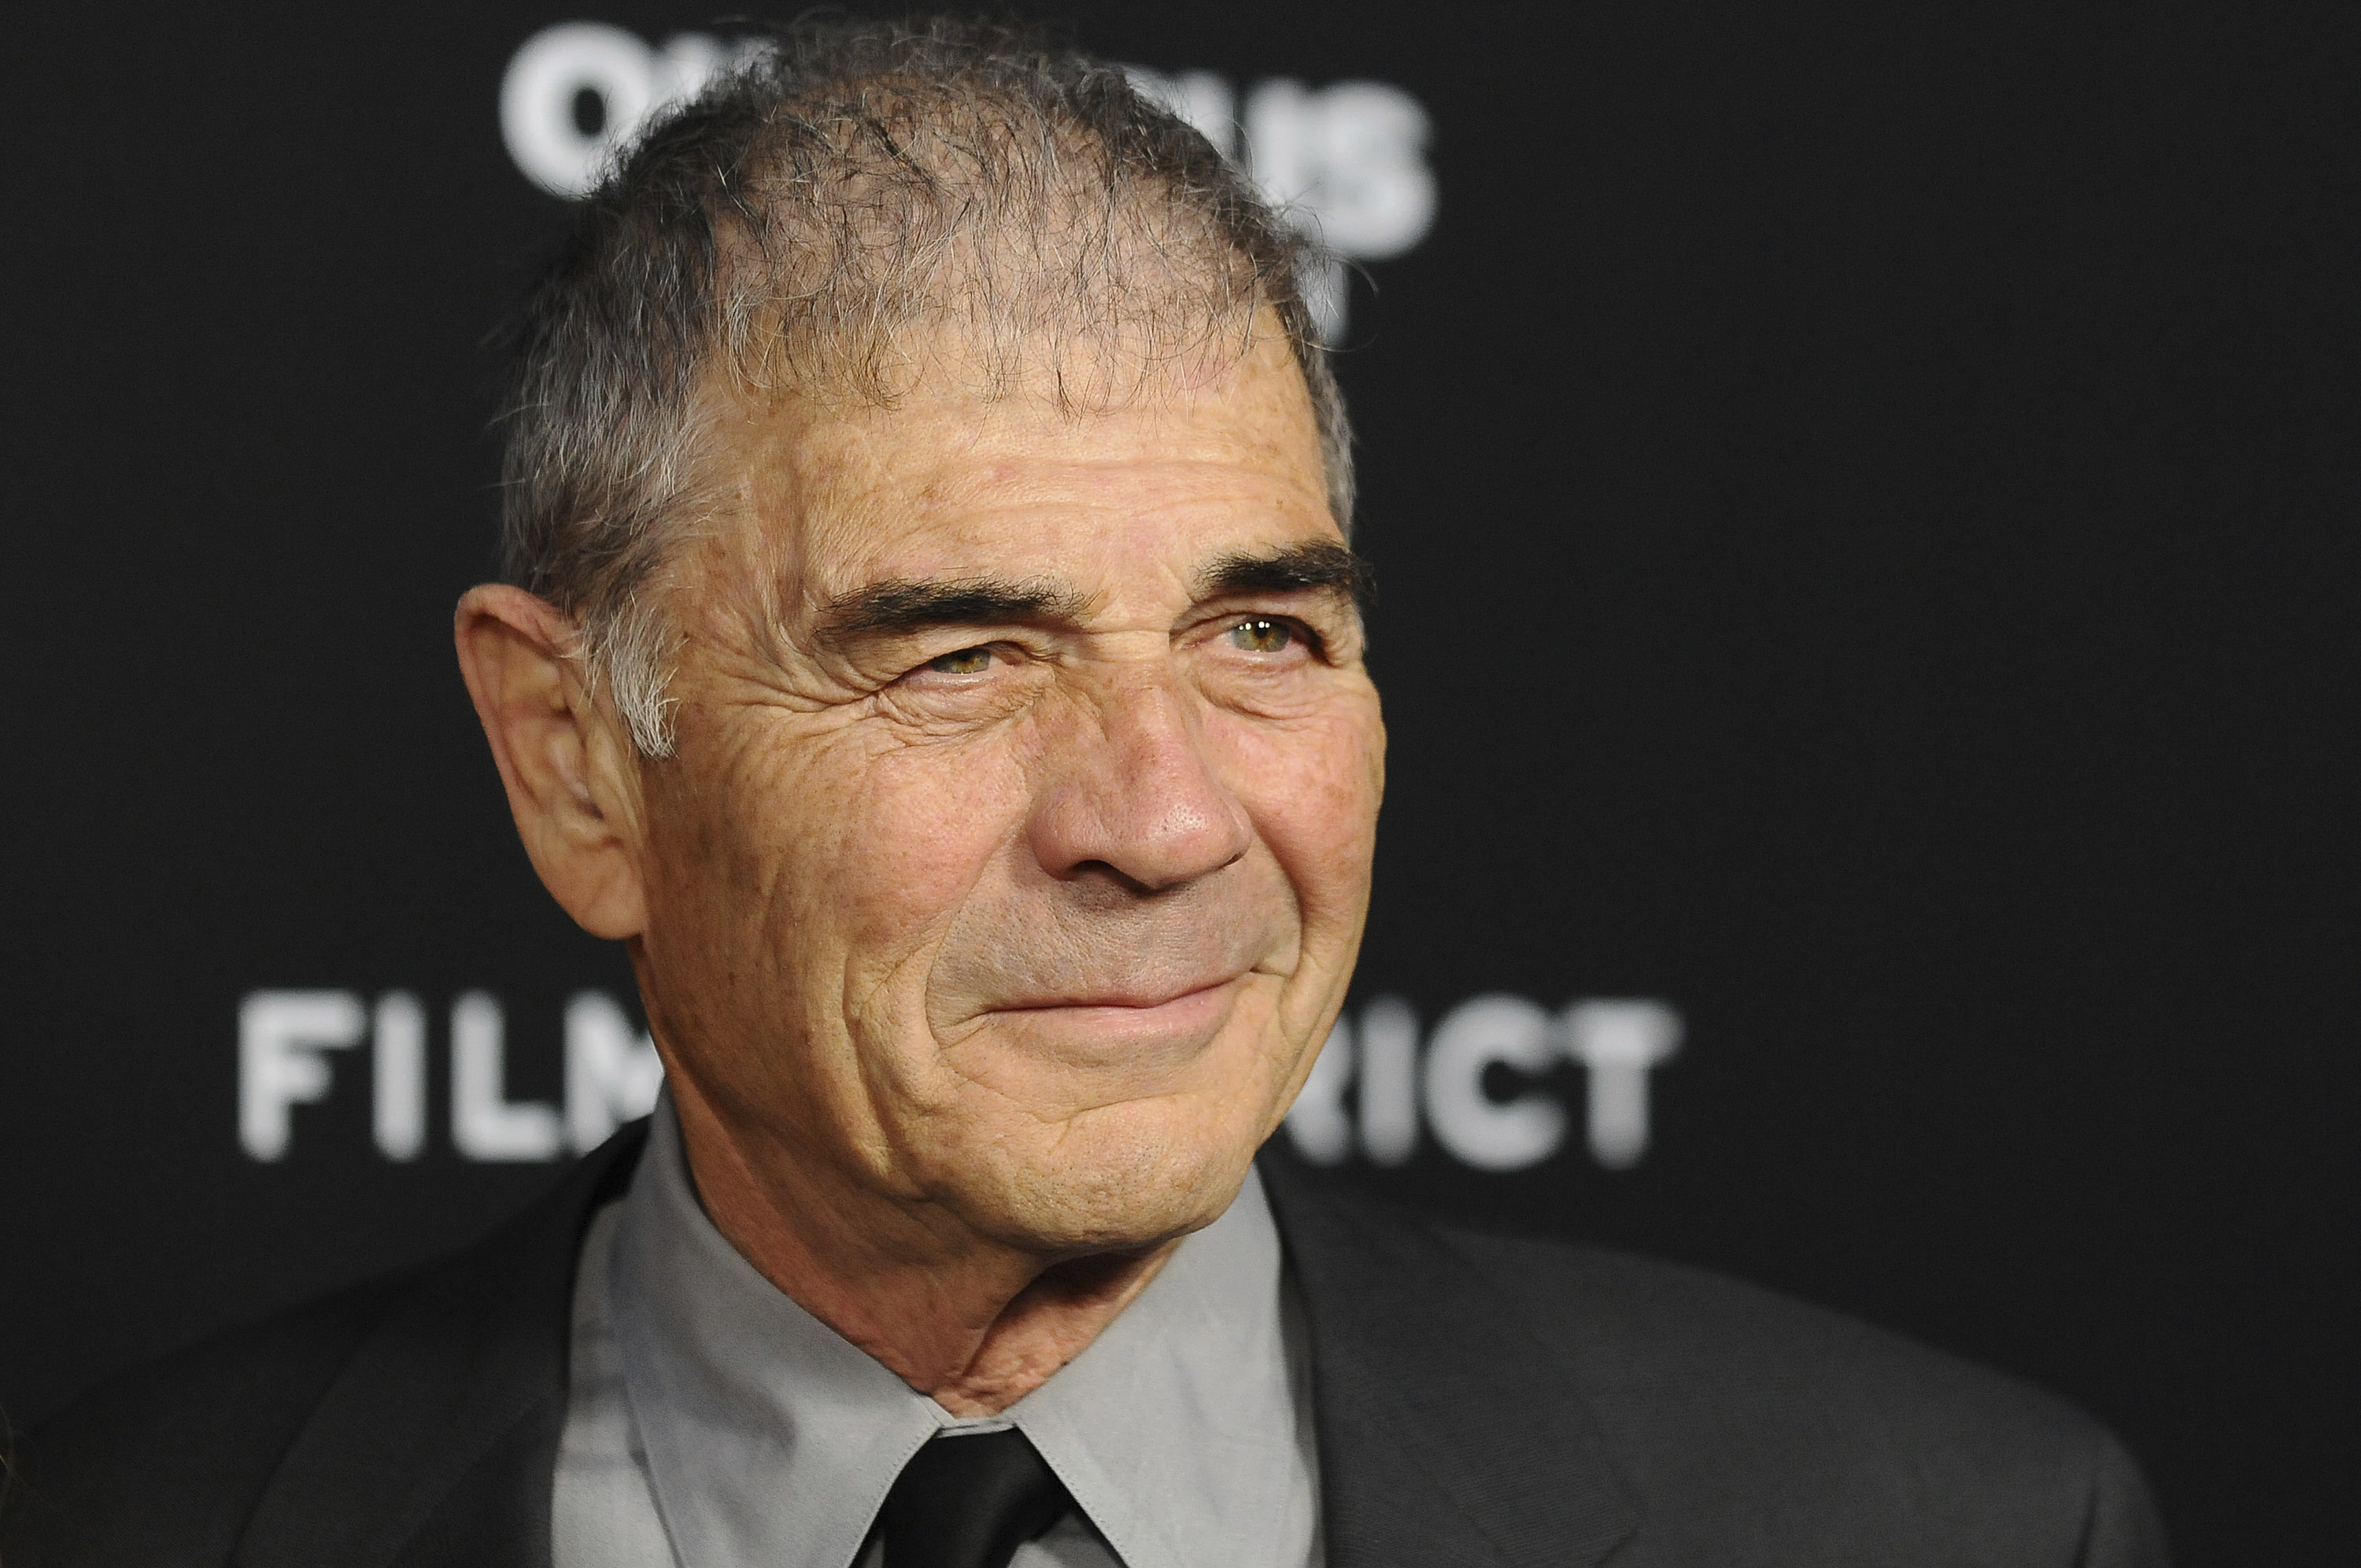 "FILE - In this Monday, March 18, 2013 file photo, Robert Forster arrives at the LA premiere of ""Olympus Has Fallen"" at the ArcLight Theatre in Los Angeles. Forster, the handsome character actor who got a career resurgence and Oscar-nomination for playing bail bondsman Max Cherry in ""Jackie Brown,"" has died at age 78. Forster's agent Julia Buchwald says he died Friday, Oct. 11, 2019, at home in Los Angeles of brain cancer.  (Photo by Jordan Strauss/Invision/AP, File)"